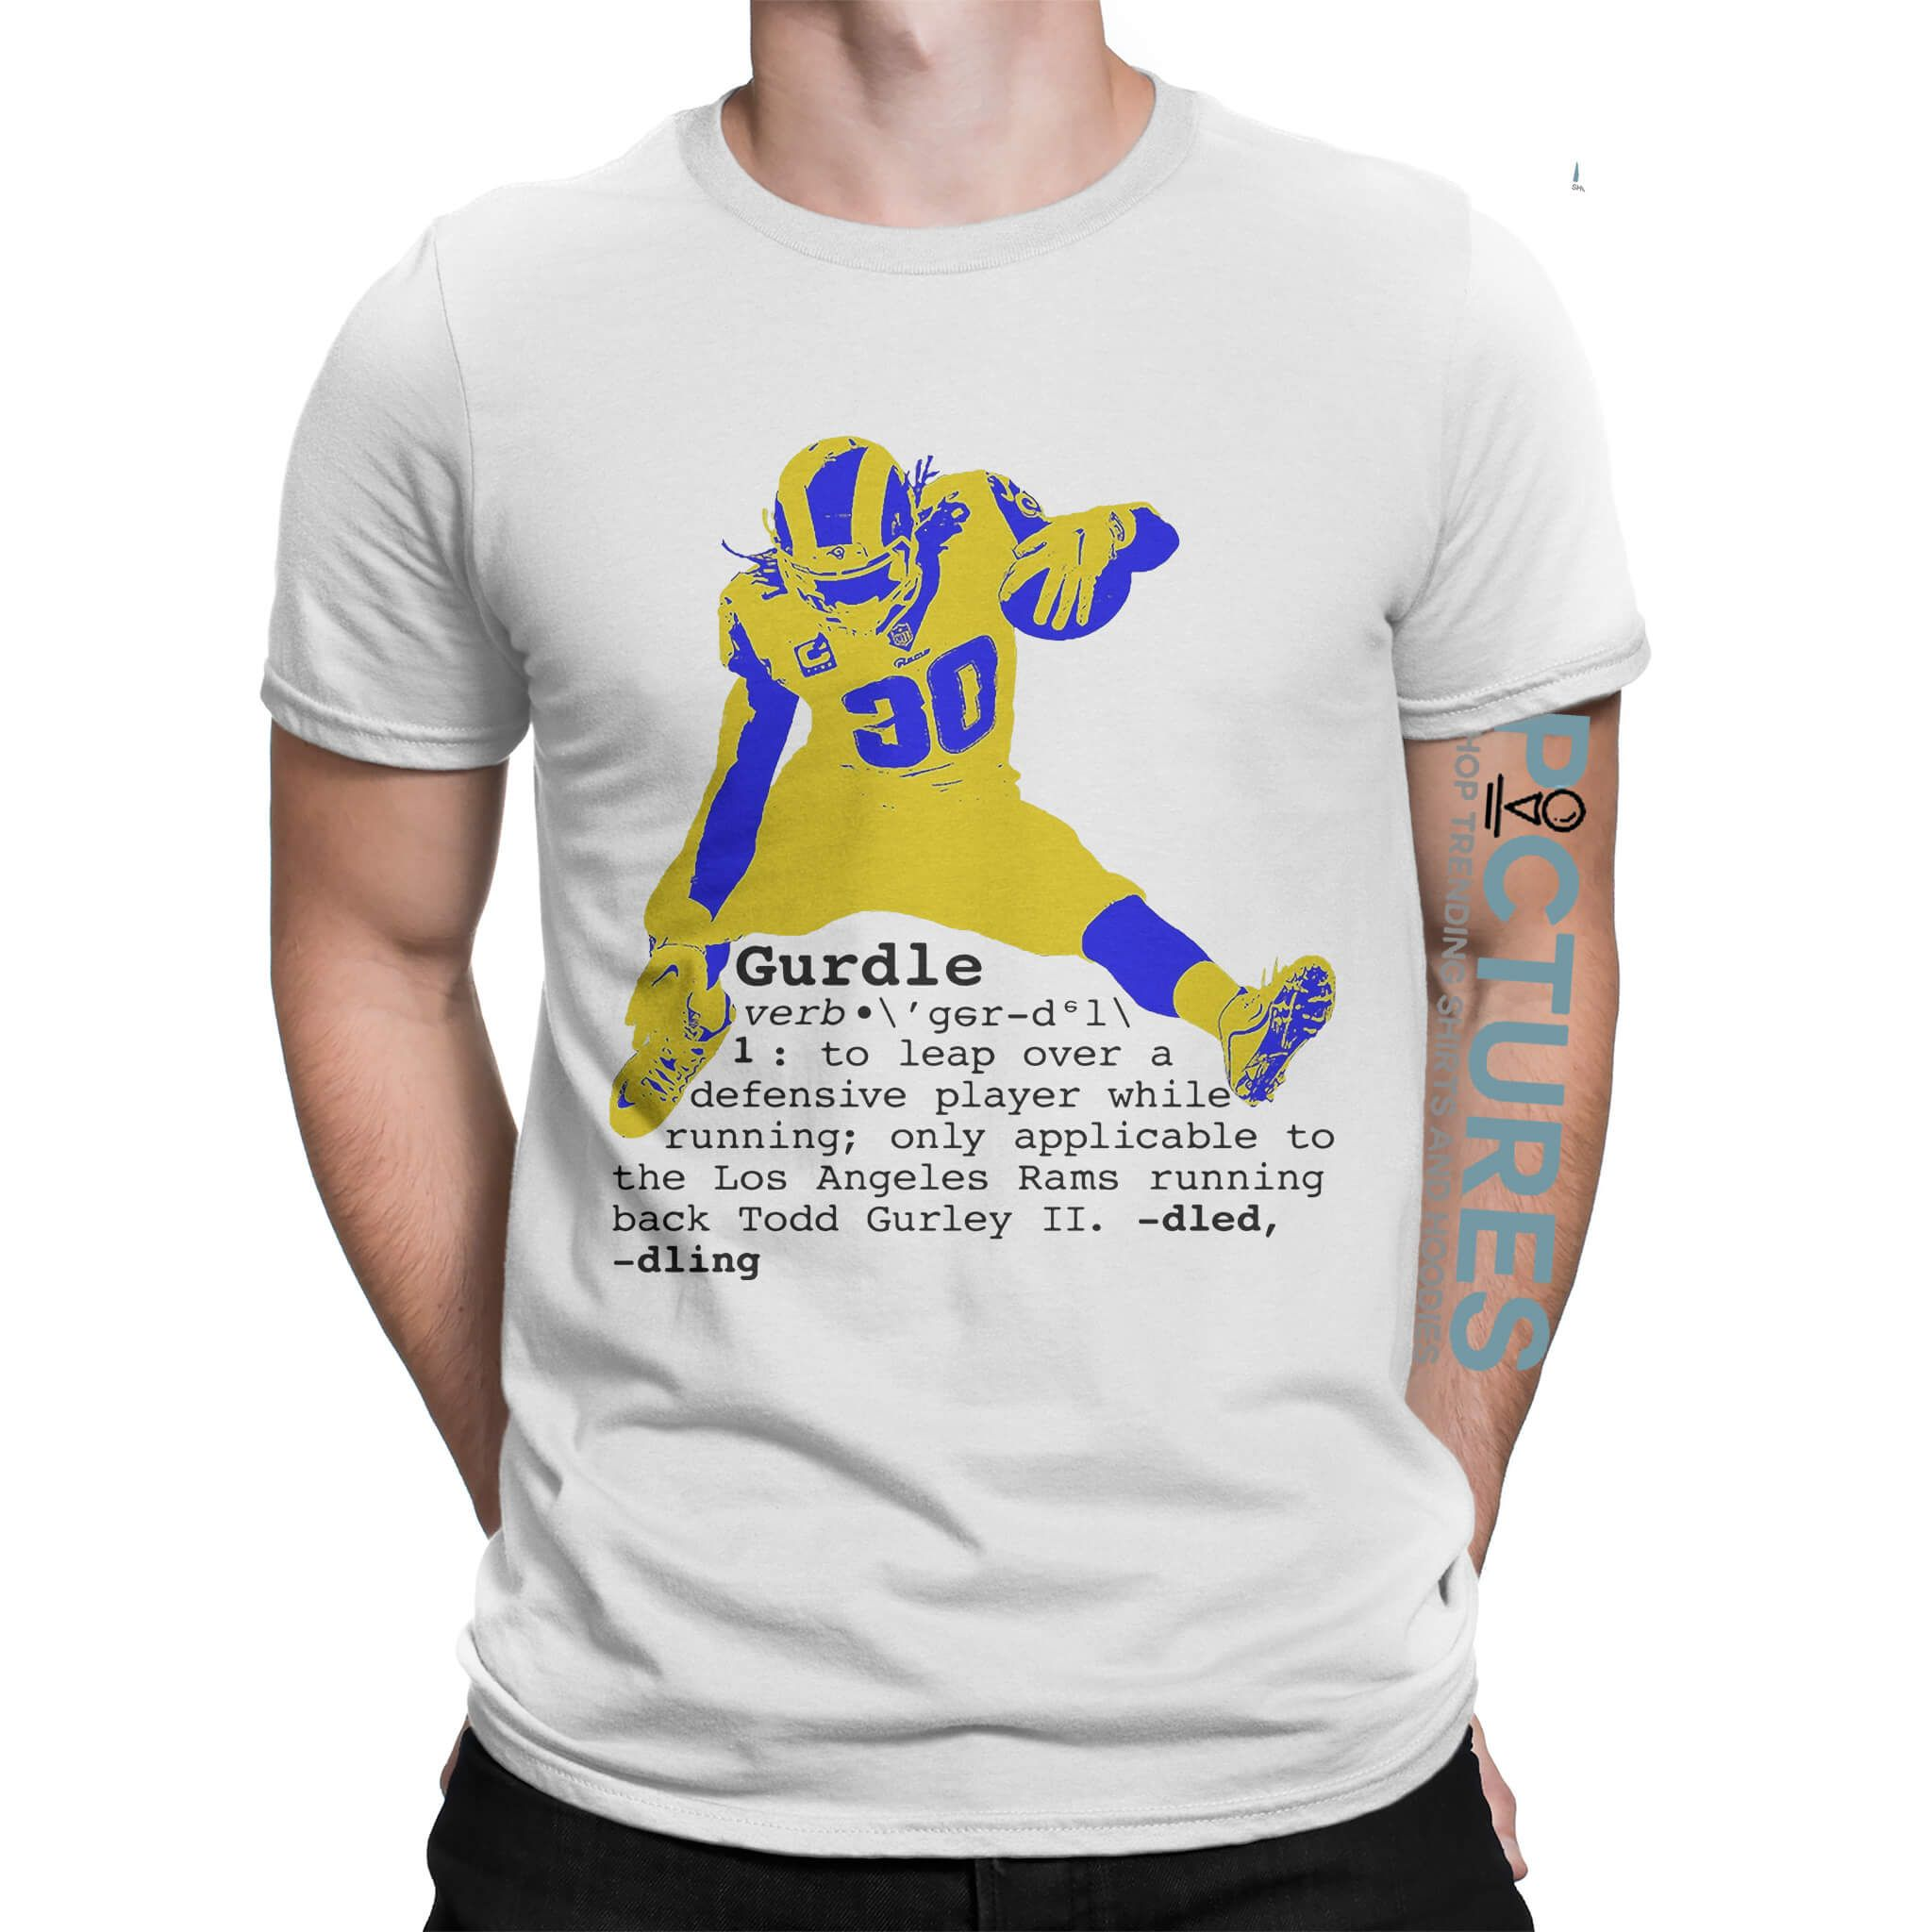 Official Todd Gurley Gurdle Shirt Hoodie Sweater V Neck T Shirt Shirts Todd Gurley Cool Shirts